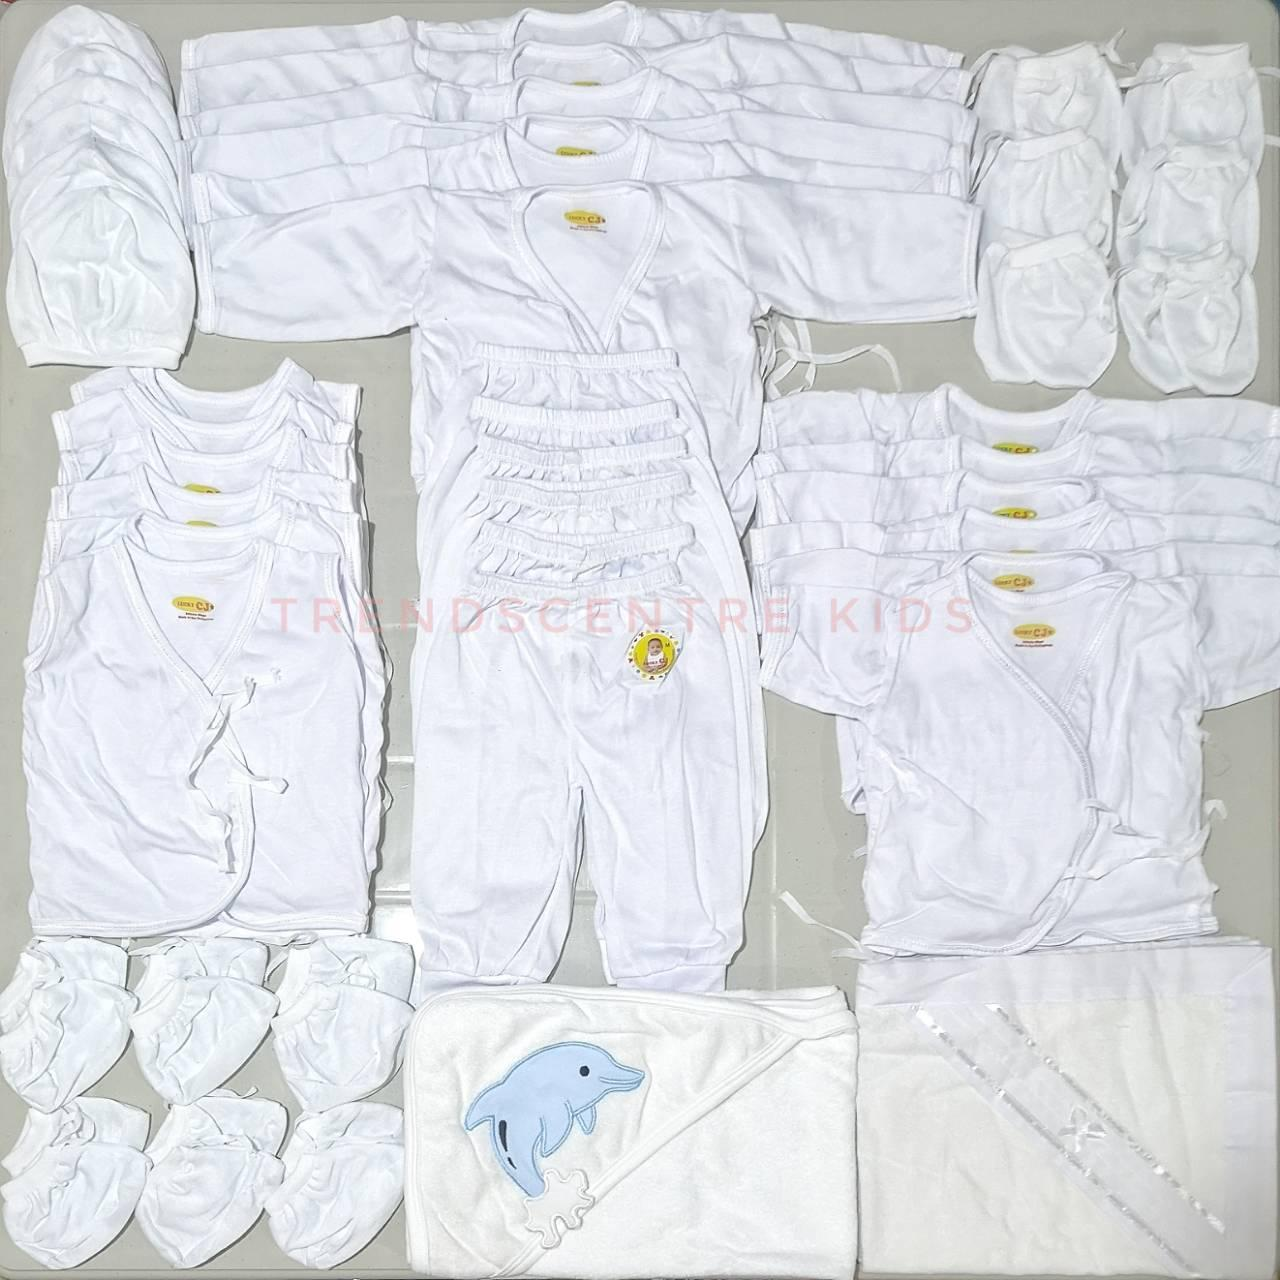 dccf8510a881 Newborn Clothes for sale - Newborn Baby Clothes online brands ...